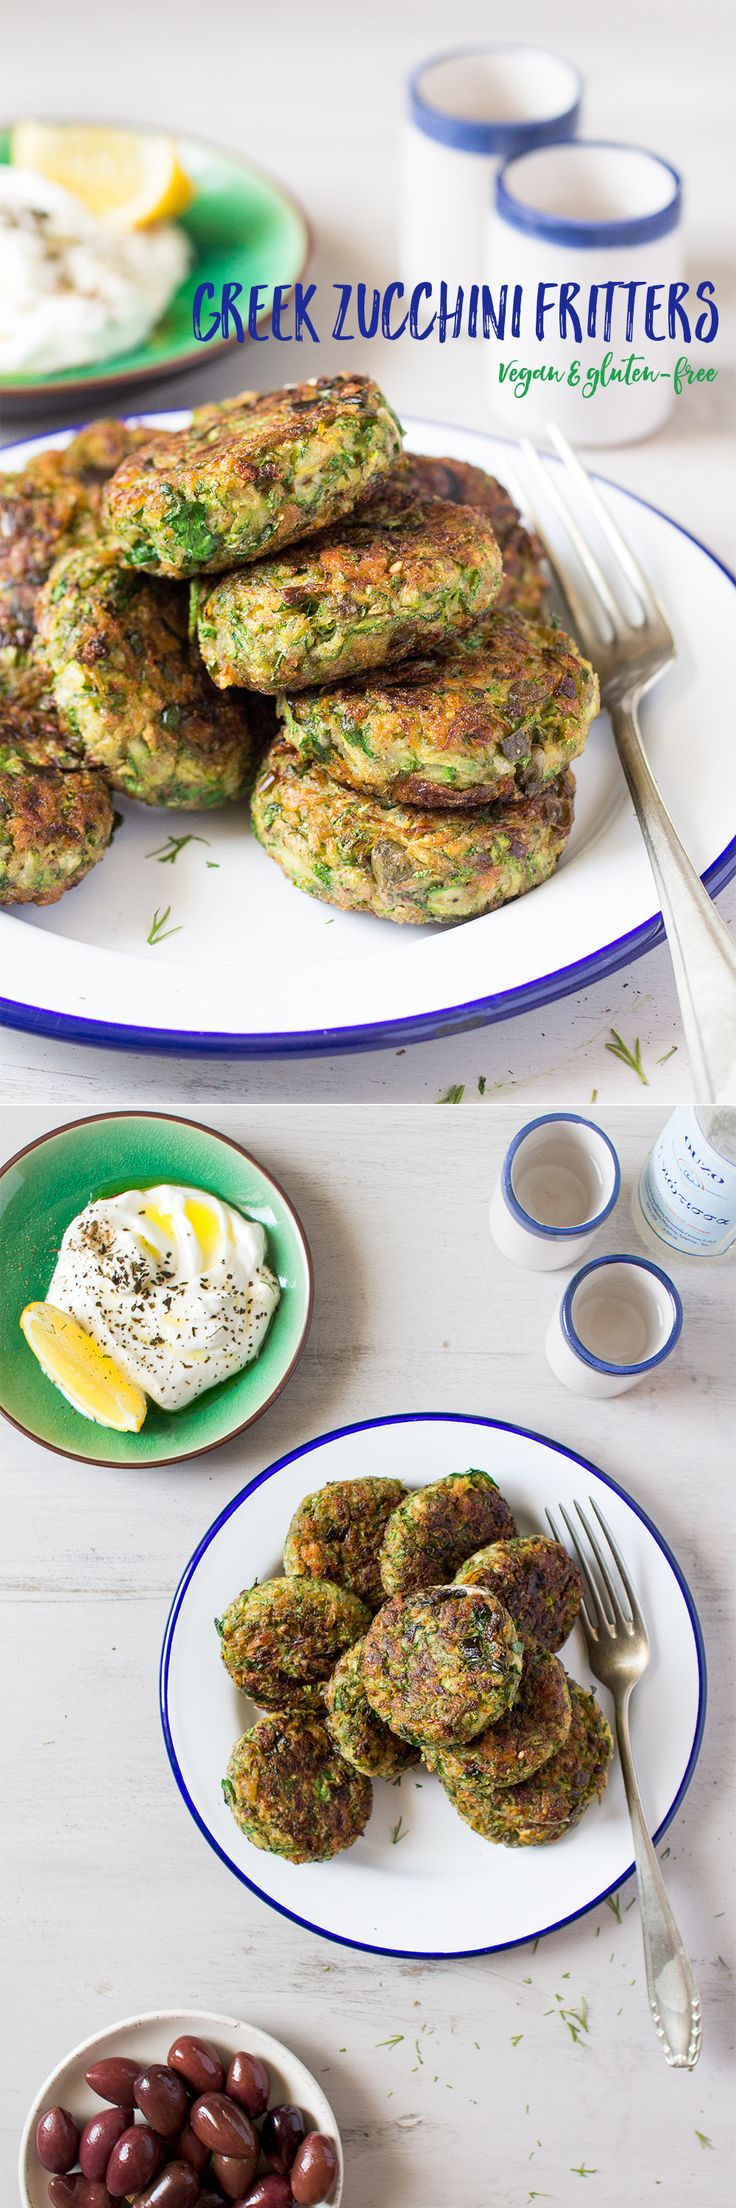 Zucchini fritters are a classic Greek mezze dish. These are vegan and gluten-free yet as tasty as the traditional ones!